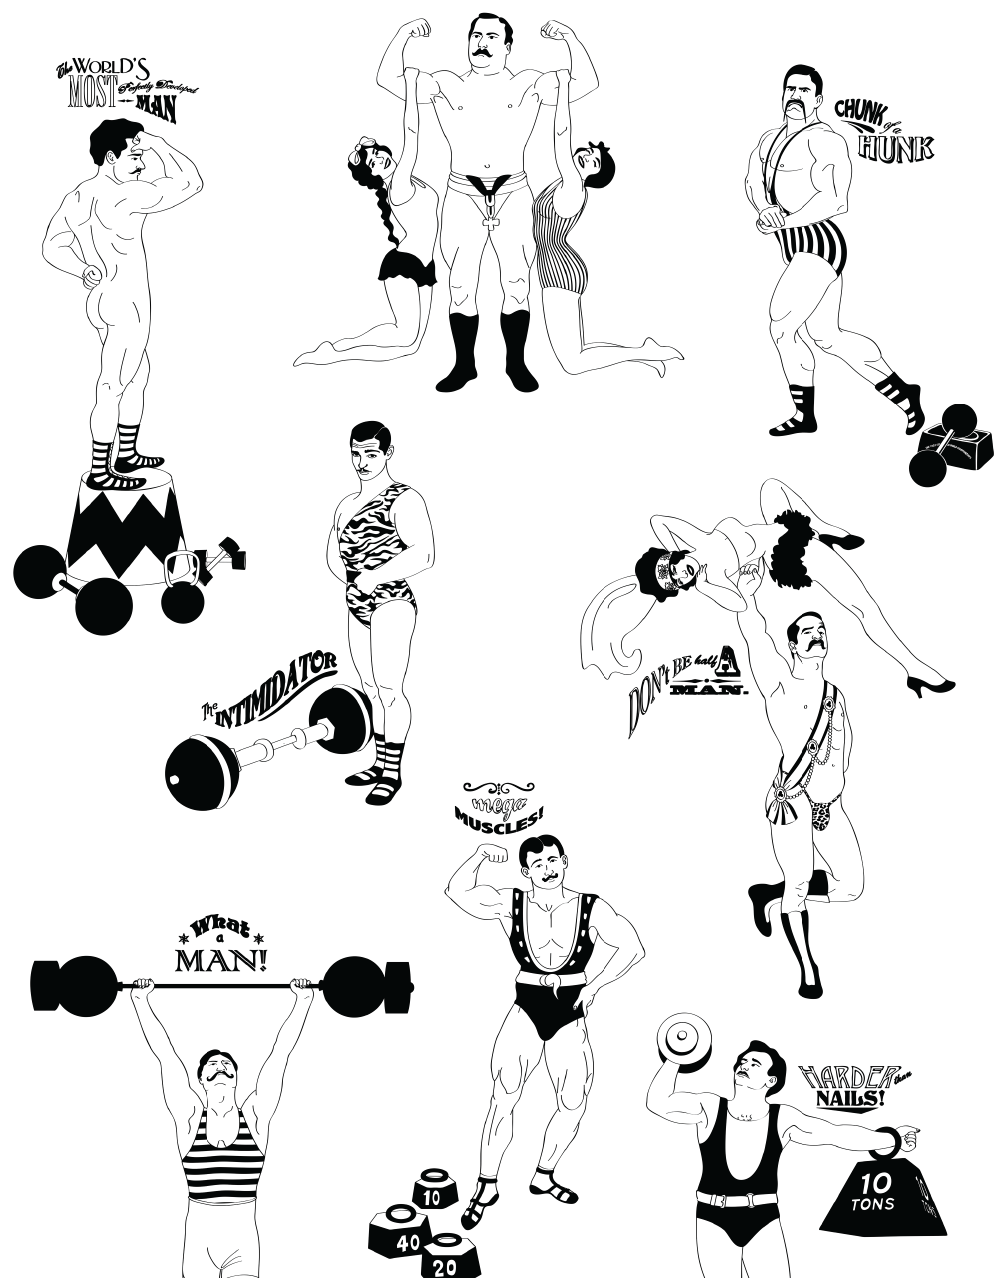 Strong Man Black And White Graphic Wallpaper Black And White Wallpaper Illustration